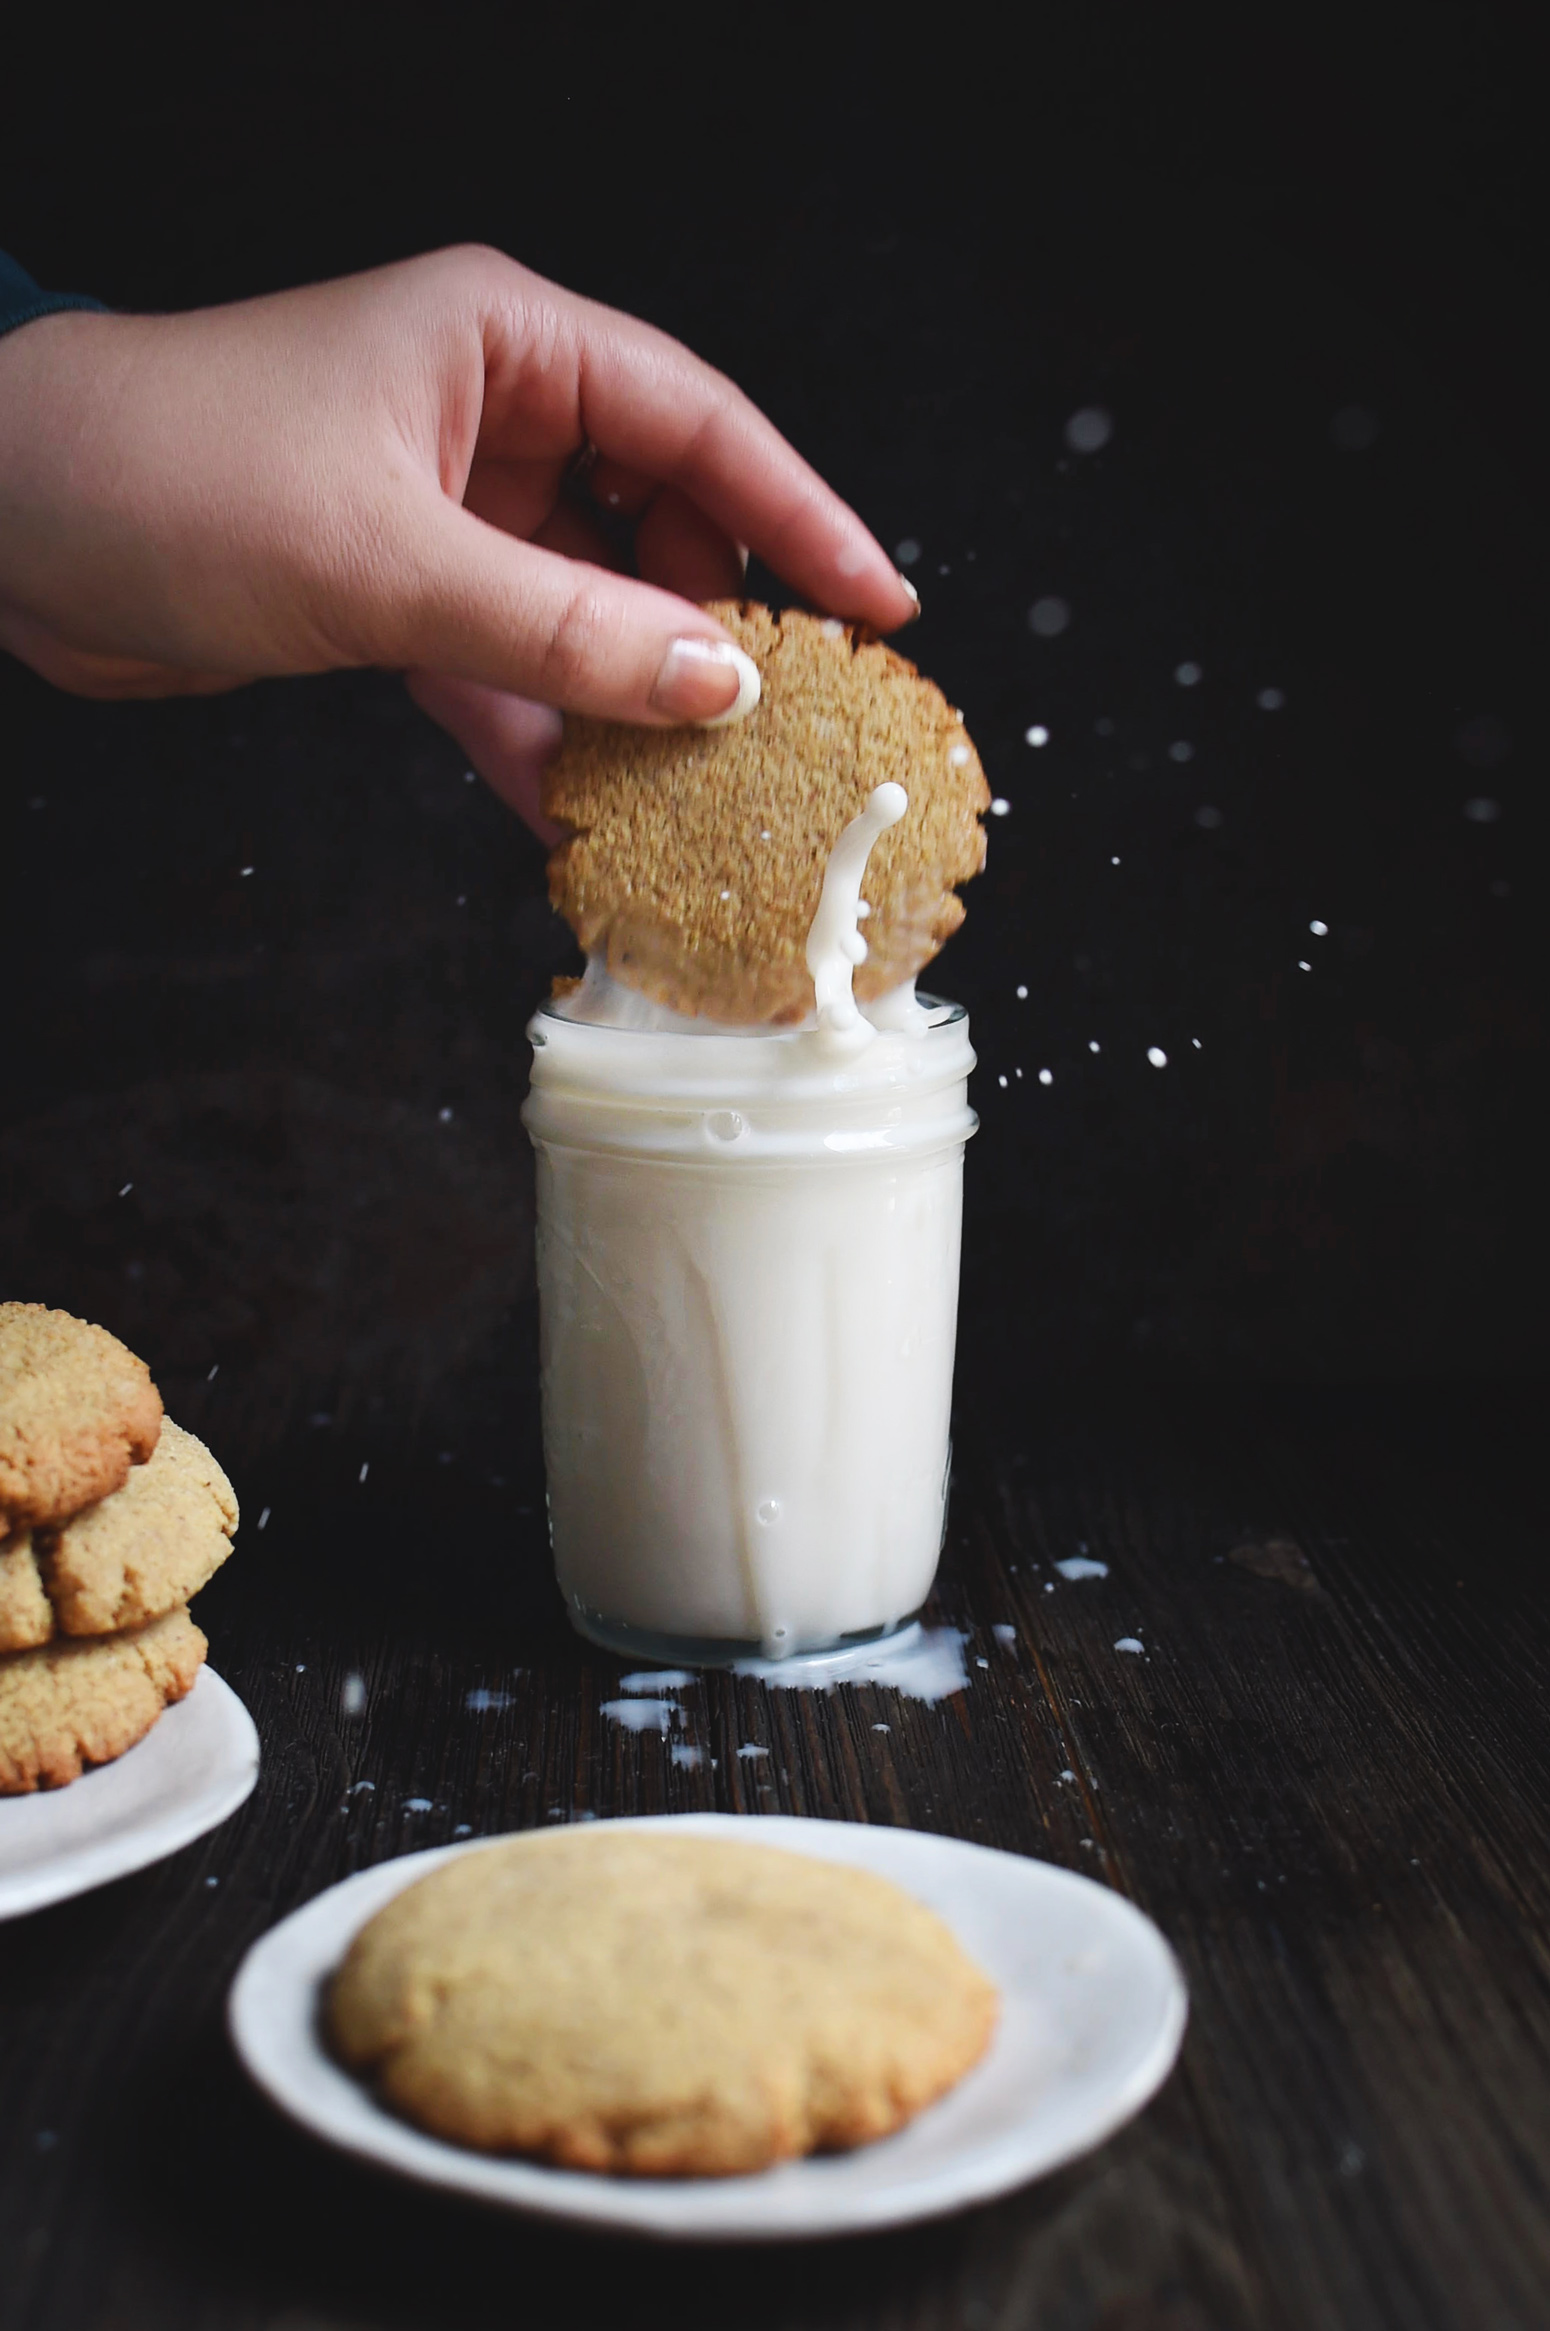 Low-Carb Molasses Gingerbread Cookie being dipped in milk.